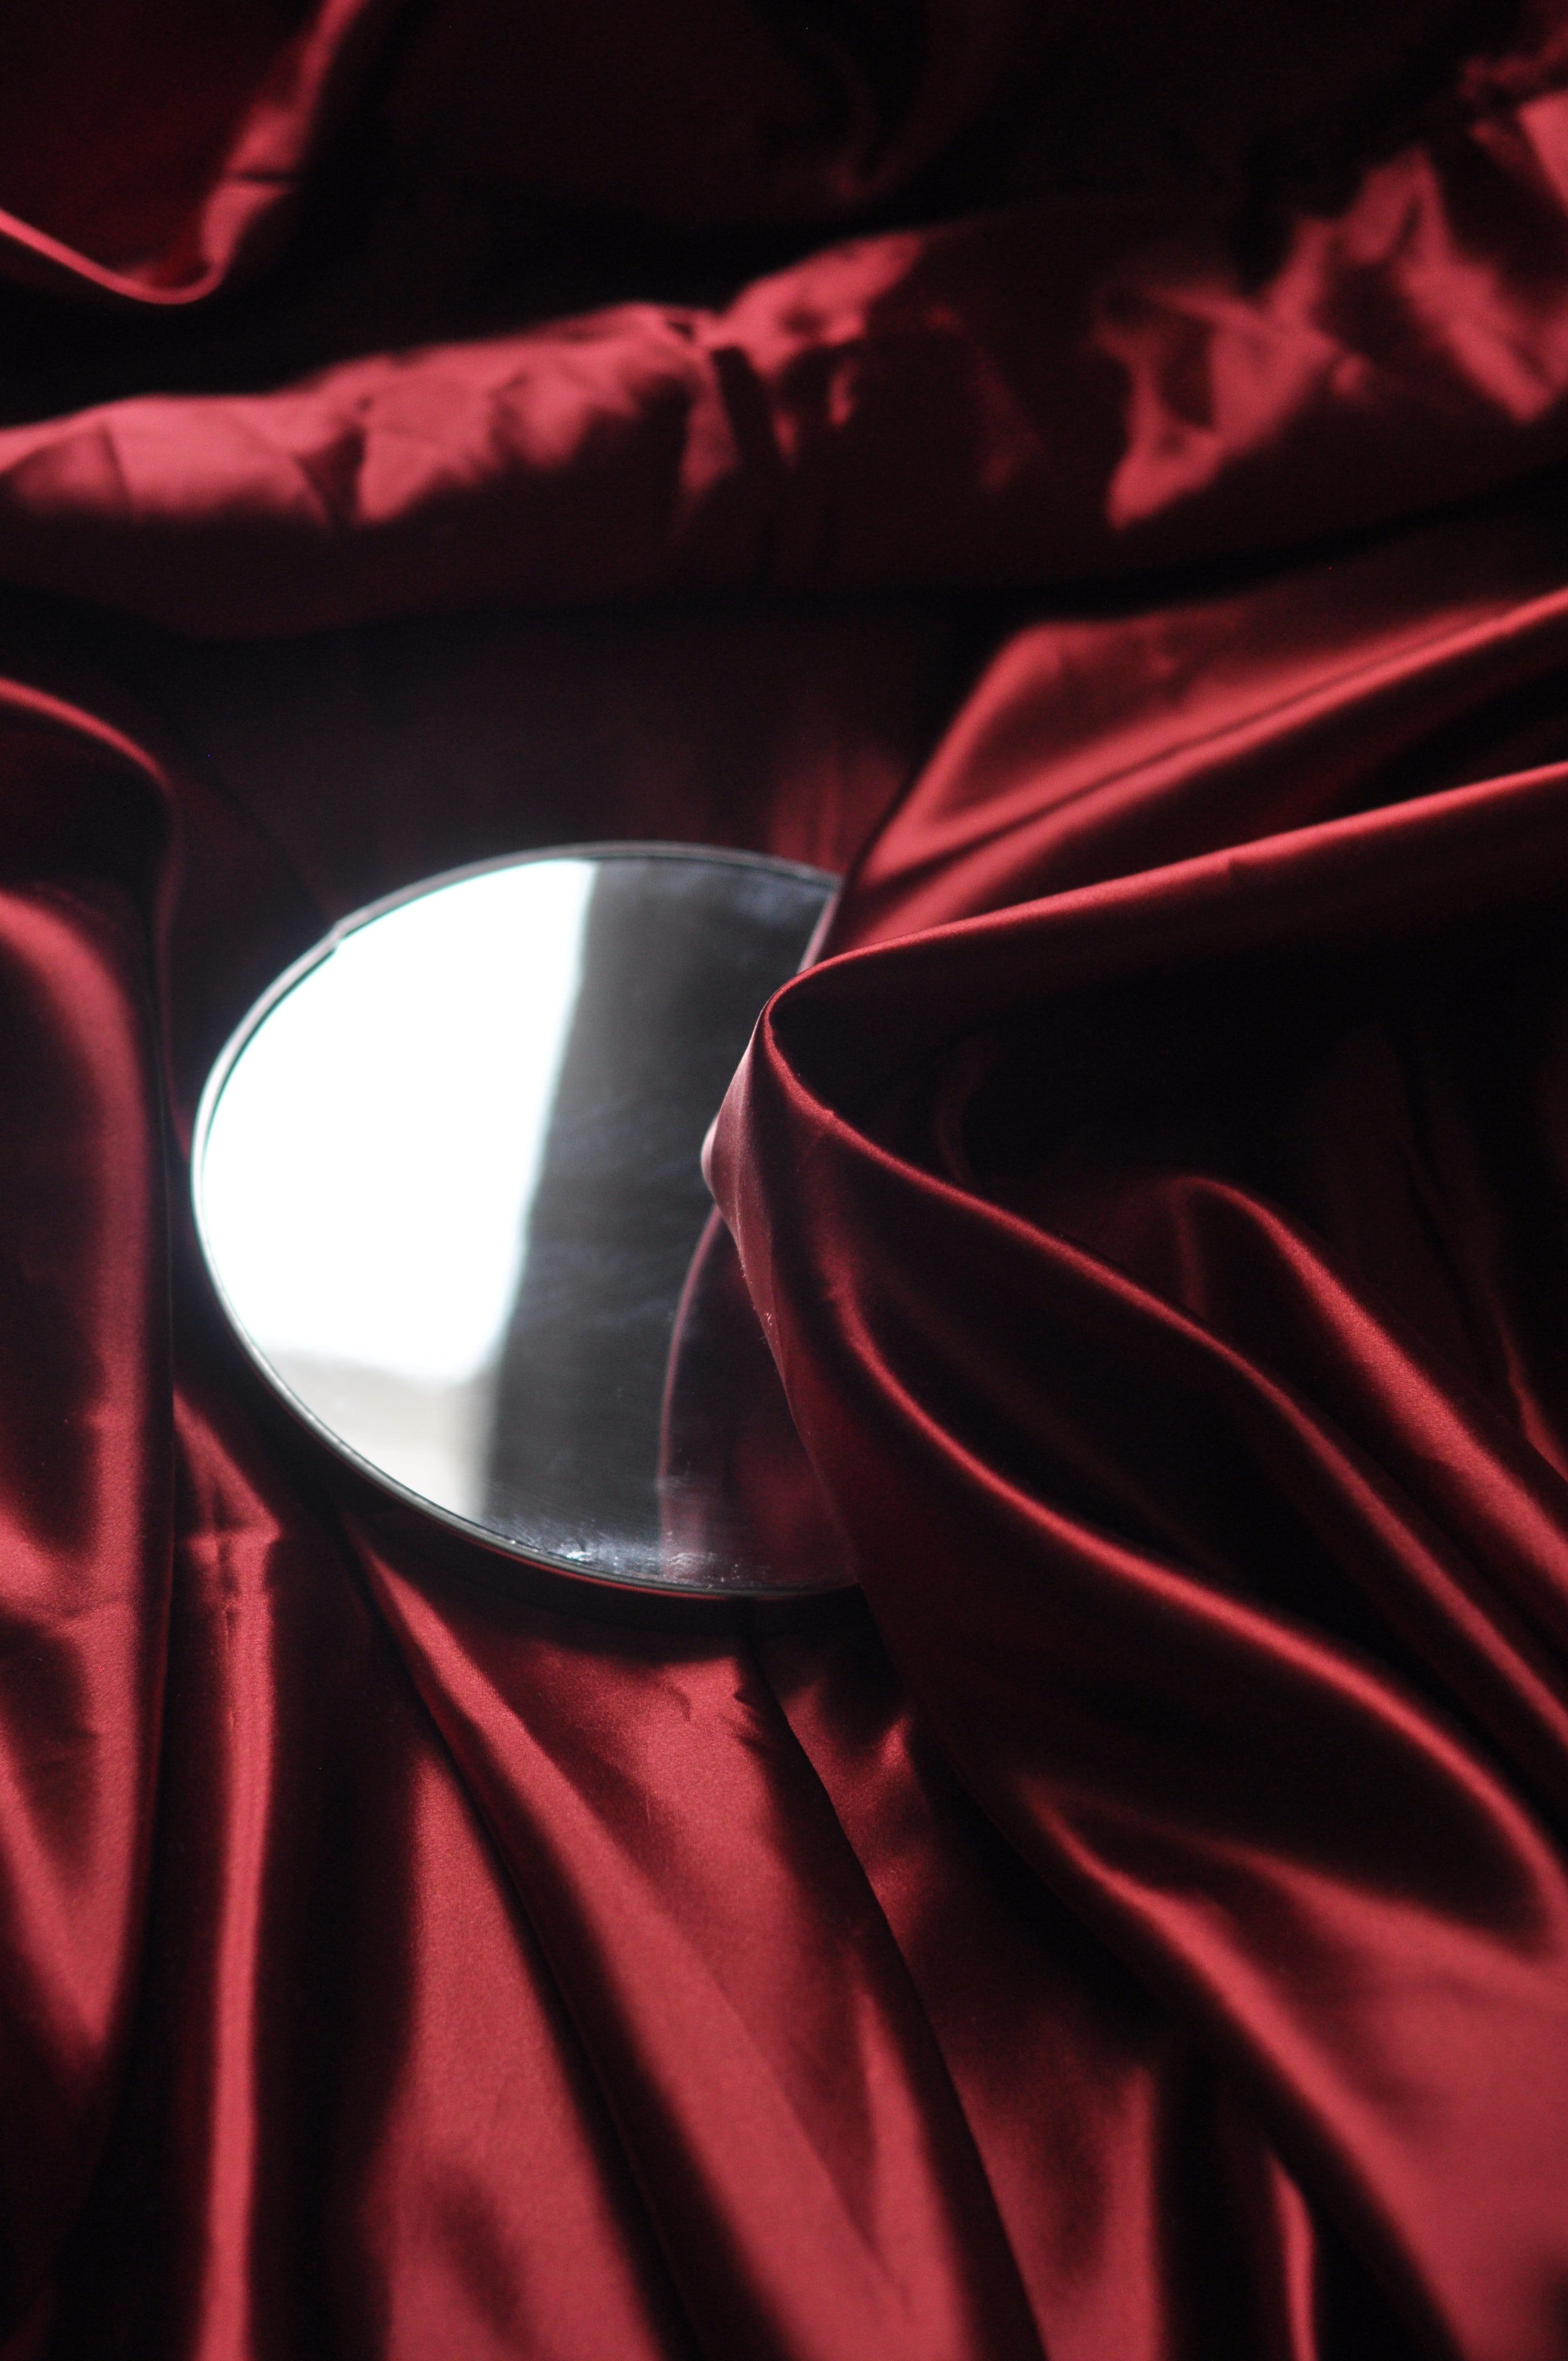 A mirror on top of some red silk | Photo: Unsplash